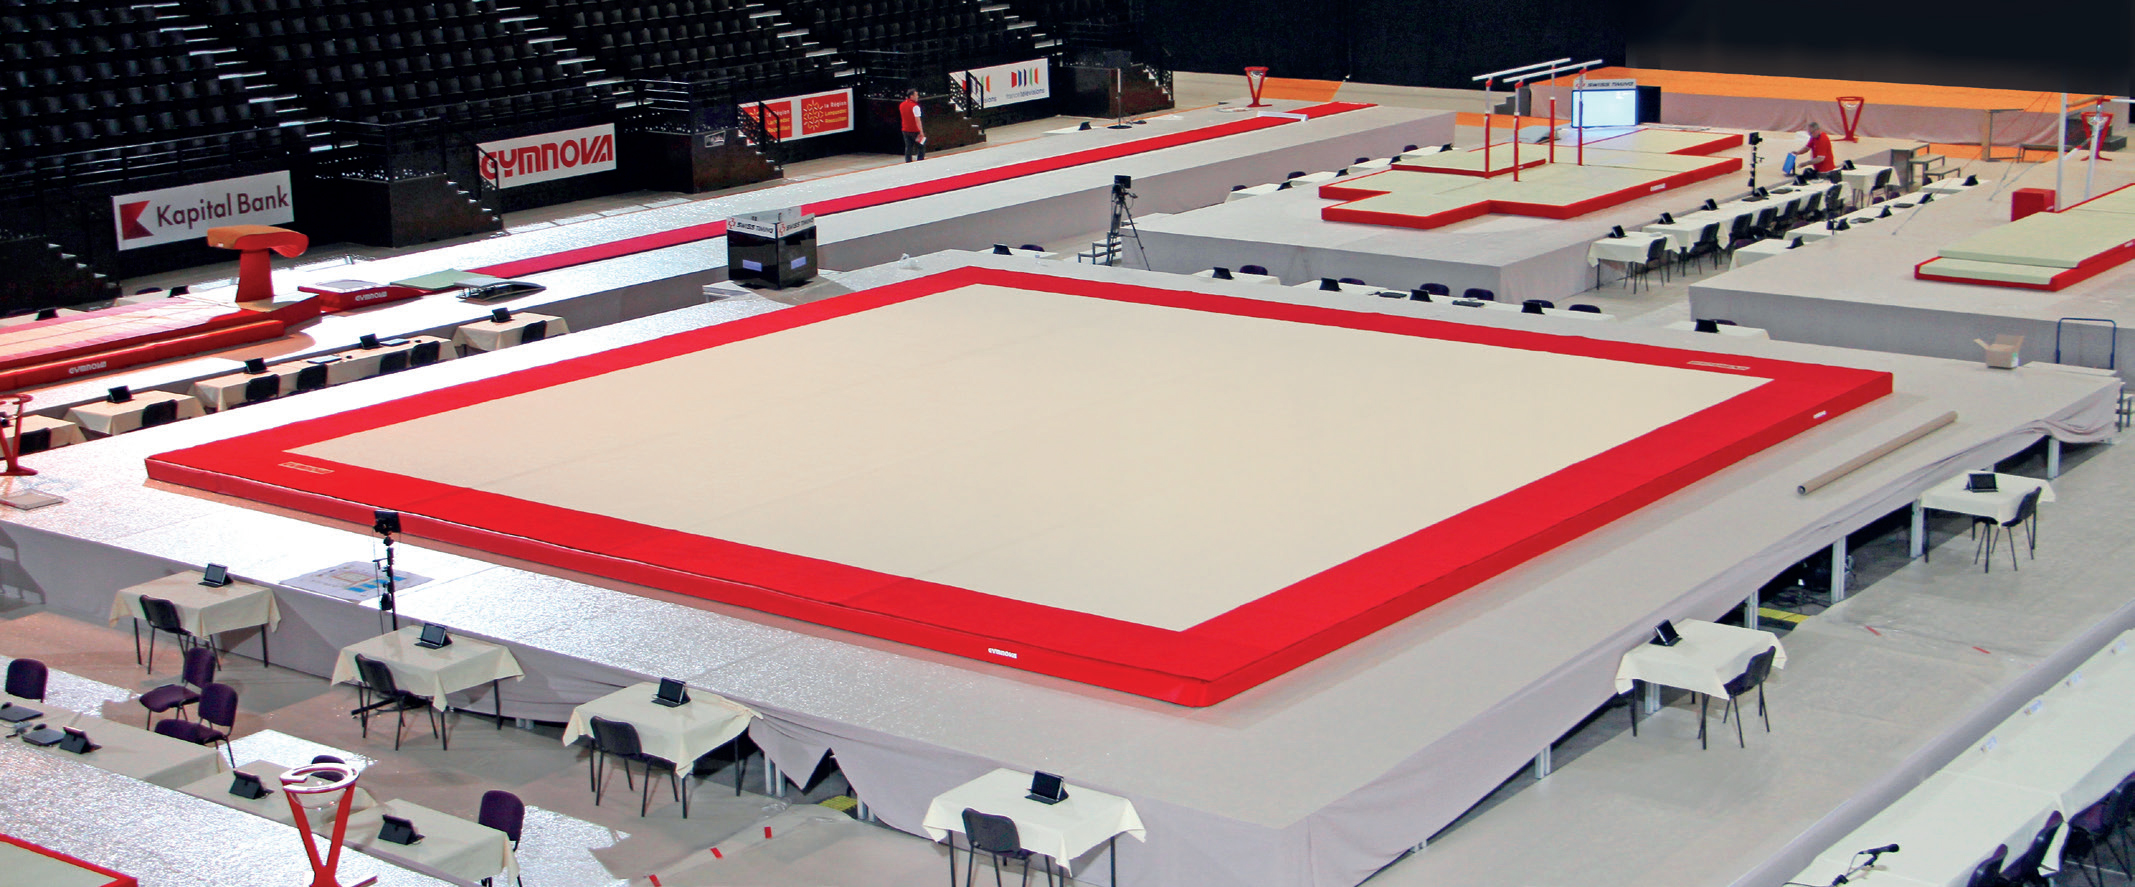 "MONTREAL"" TRAINING SPRING EXERCISE FLOOR WITH OVERLAY CARPET (SPRINGS ASSEMBLED) - 13 x 13 m (*)"